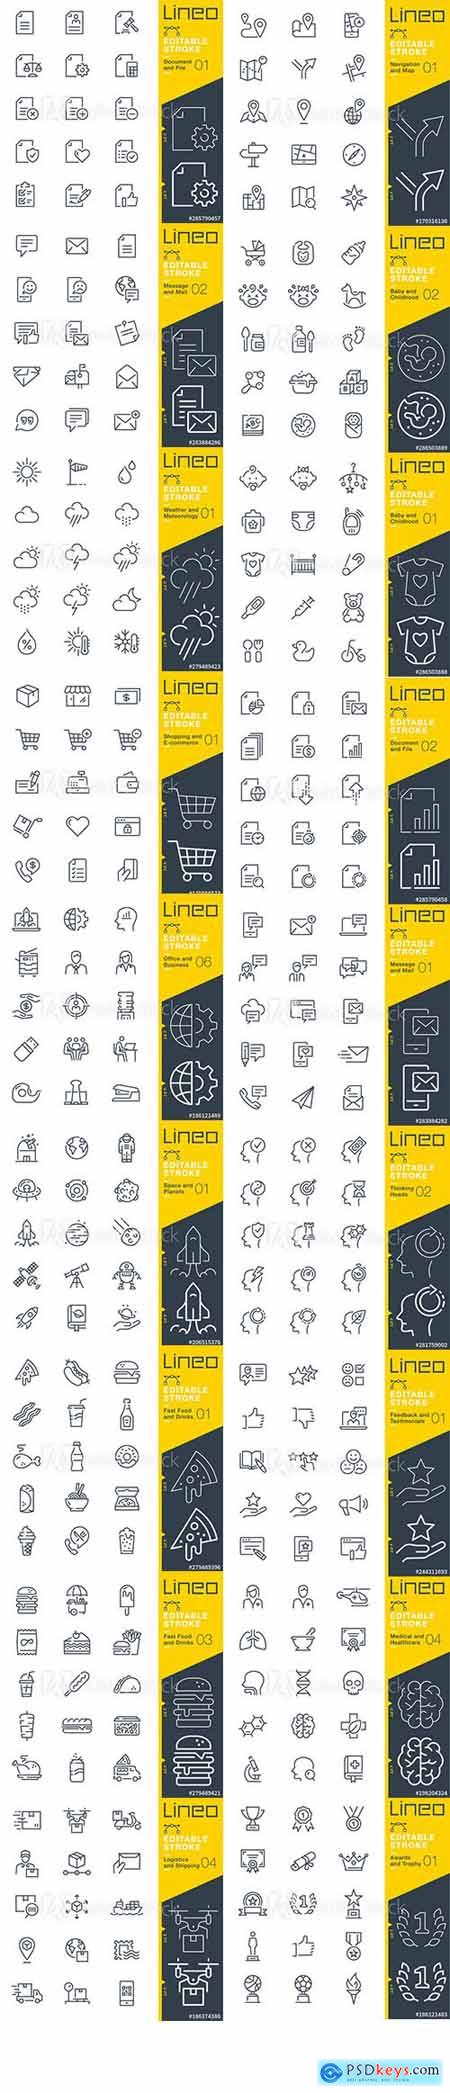 Vector Set - Outline Icons Pack Lineo Vol 6